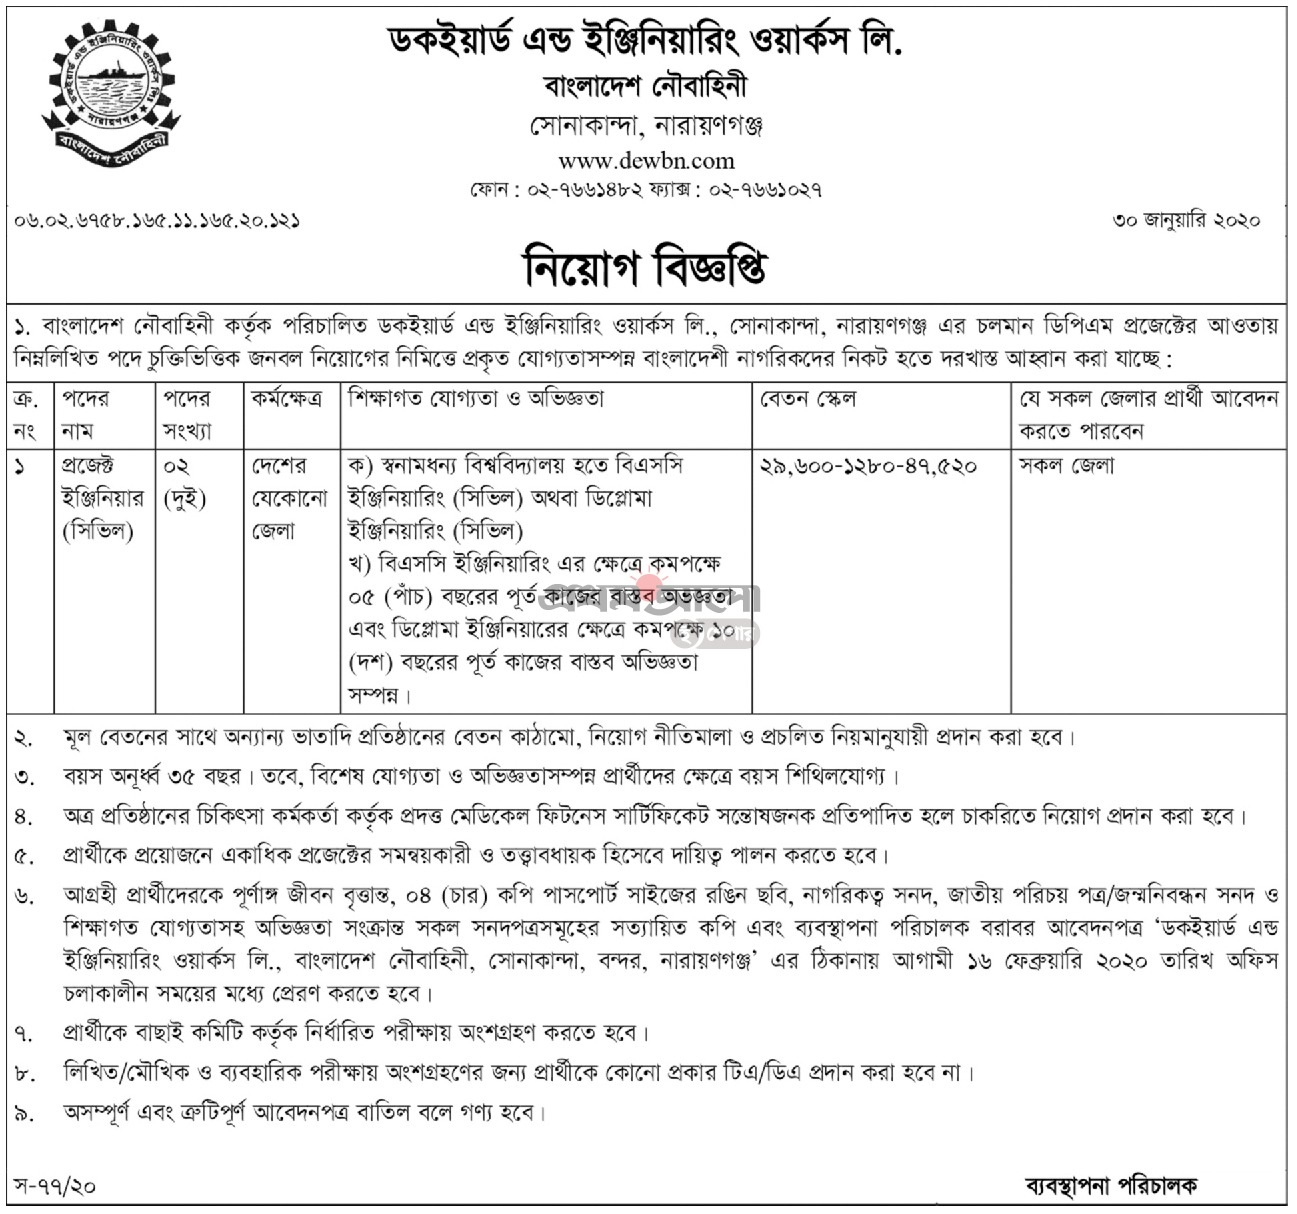 Bangladesh Navy Civilian Job Circular 2020